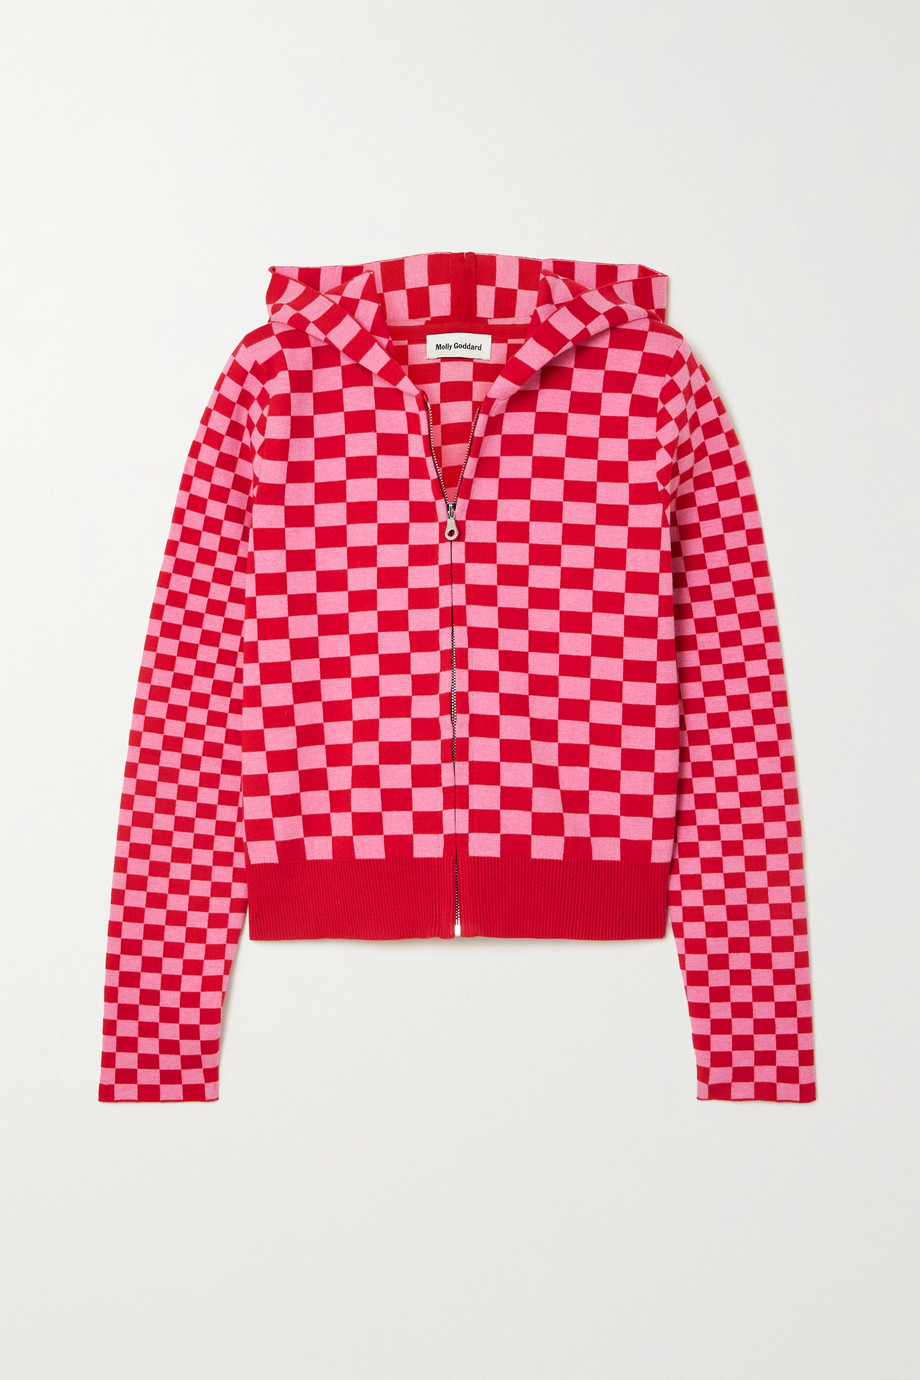 MOLLY GODDARD Owen checked cotton hoodie